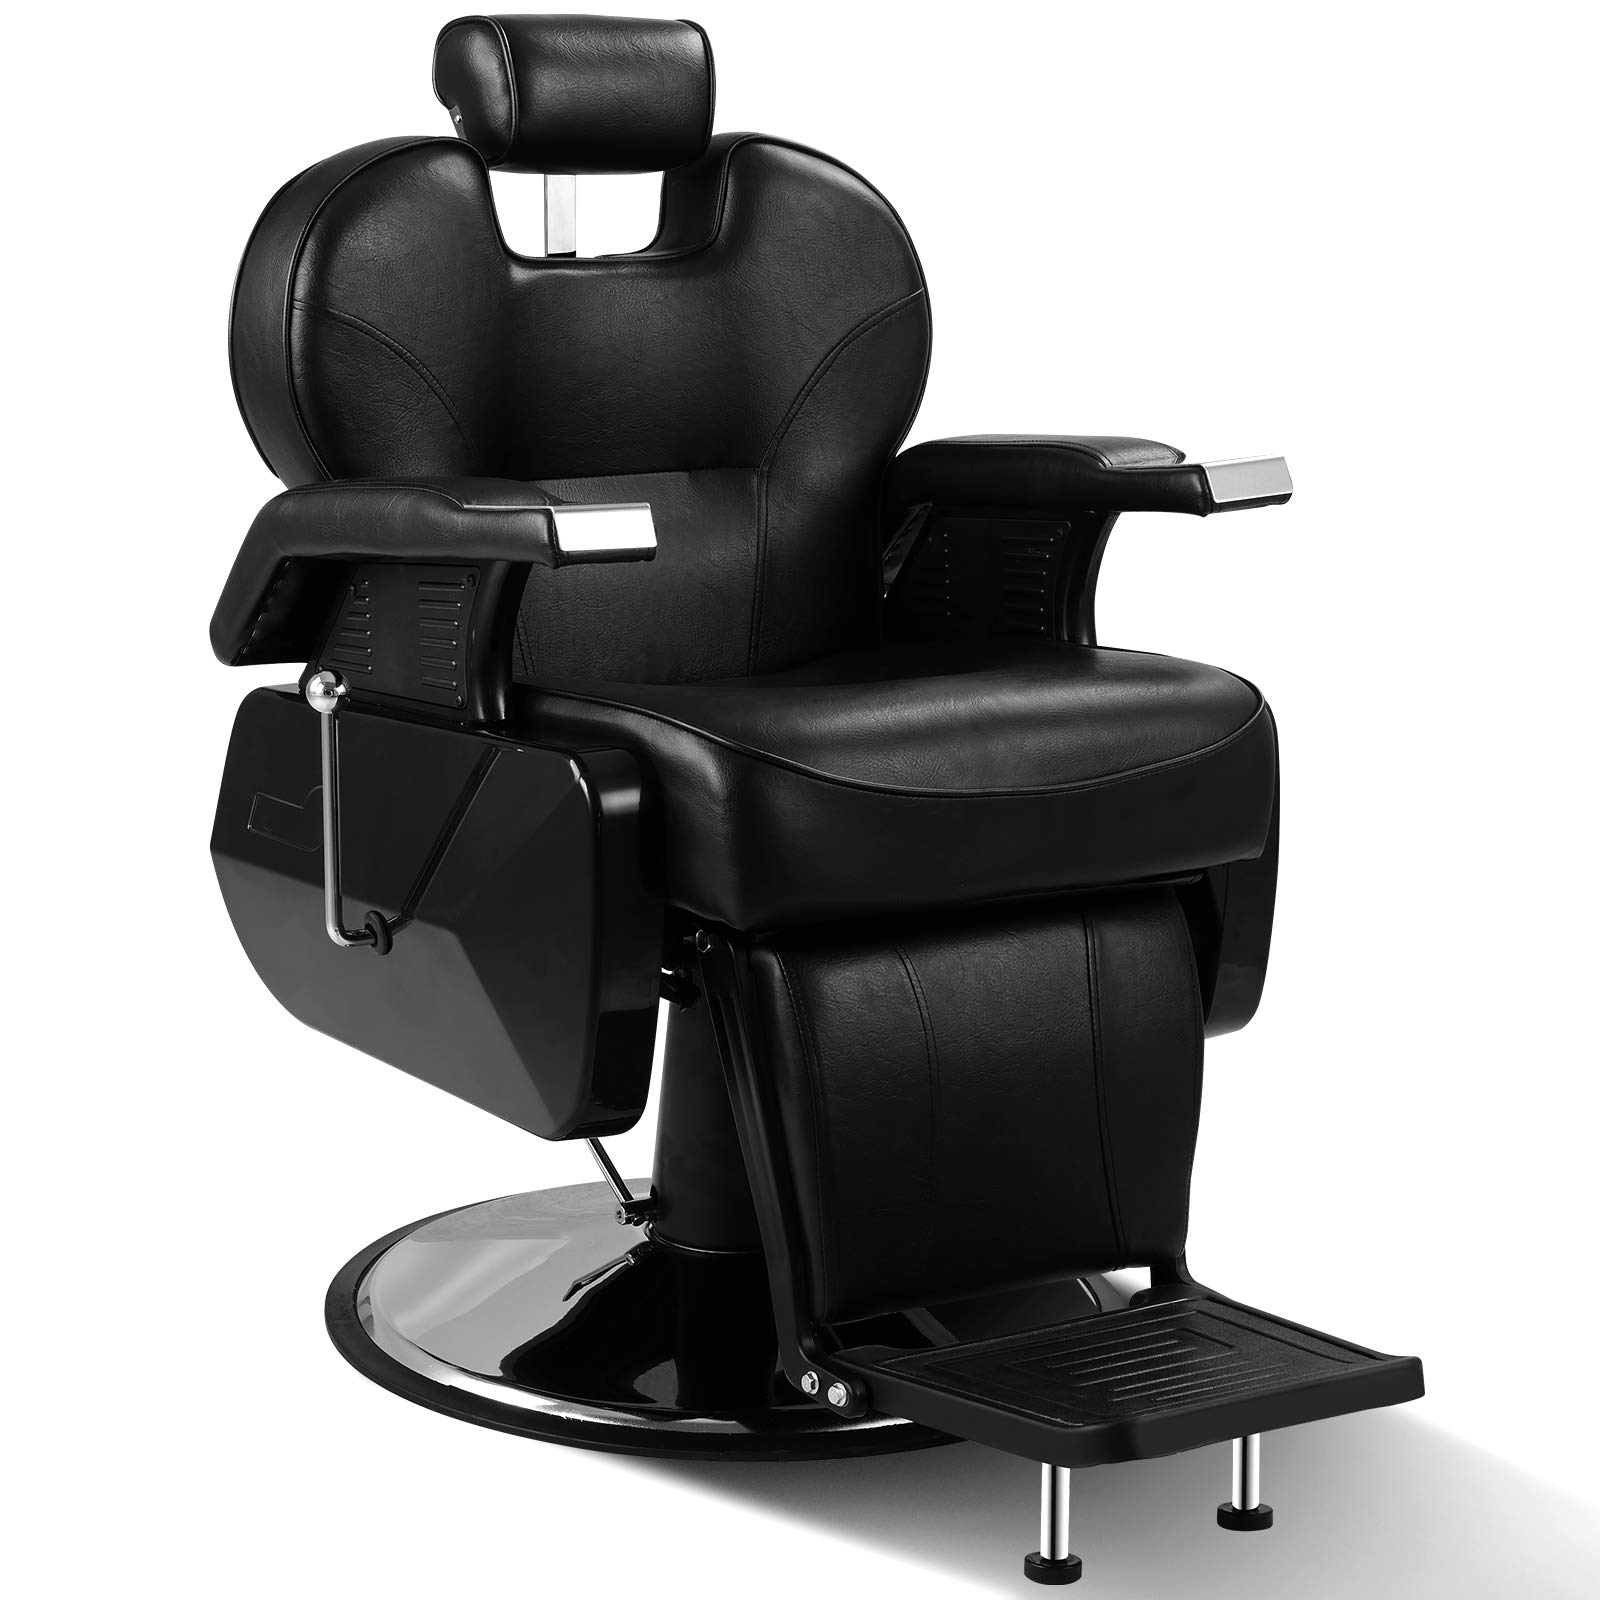 ARTIST HAND Black All Purpose Hydraulic Recline Barber Chair Salon Beauty Spa Shampoo Styling Chair for Beauty Shop (1 PCS, Black) by Artist Hand